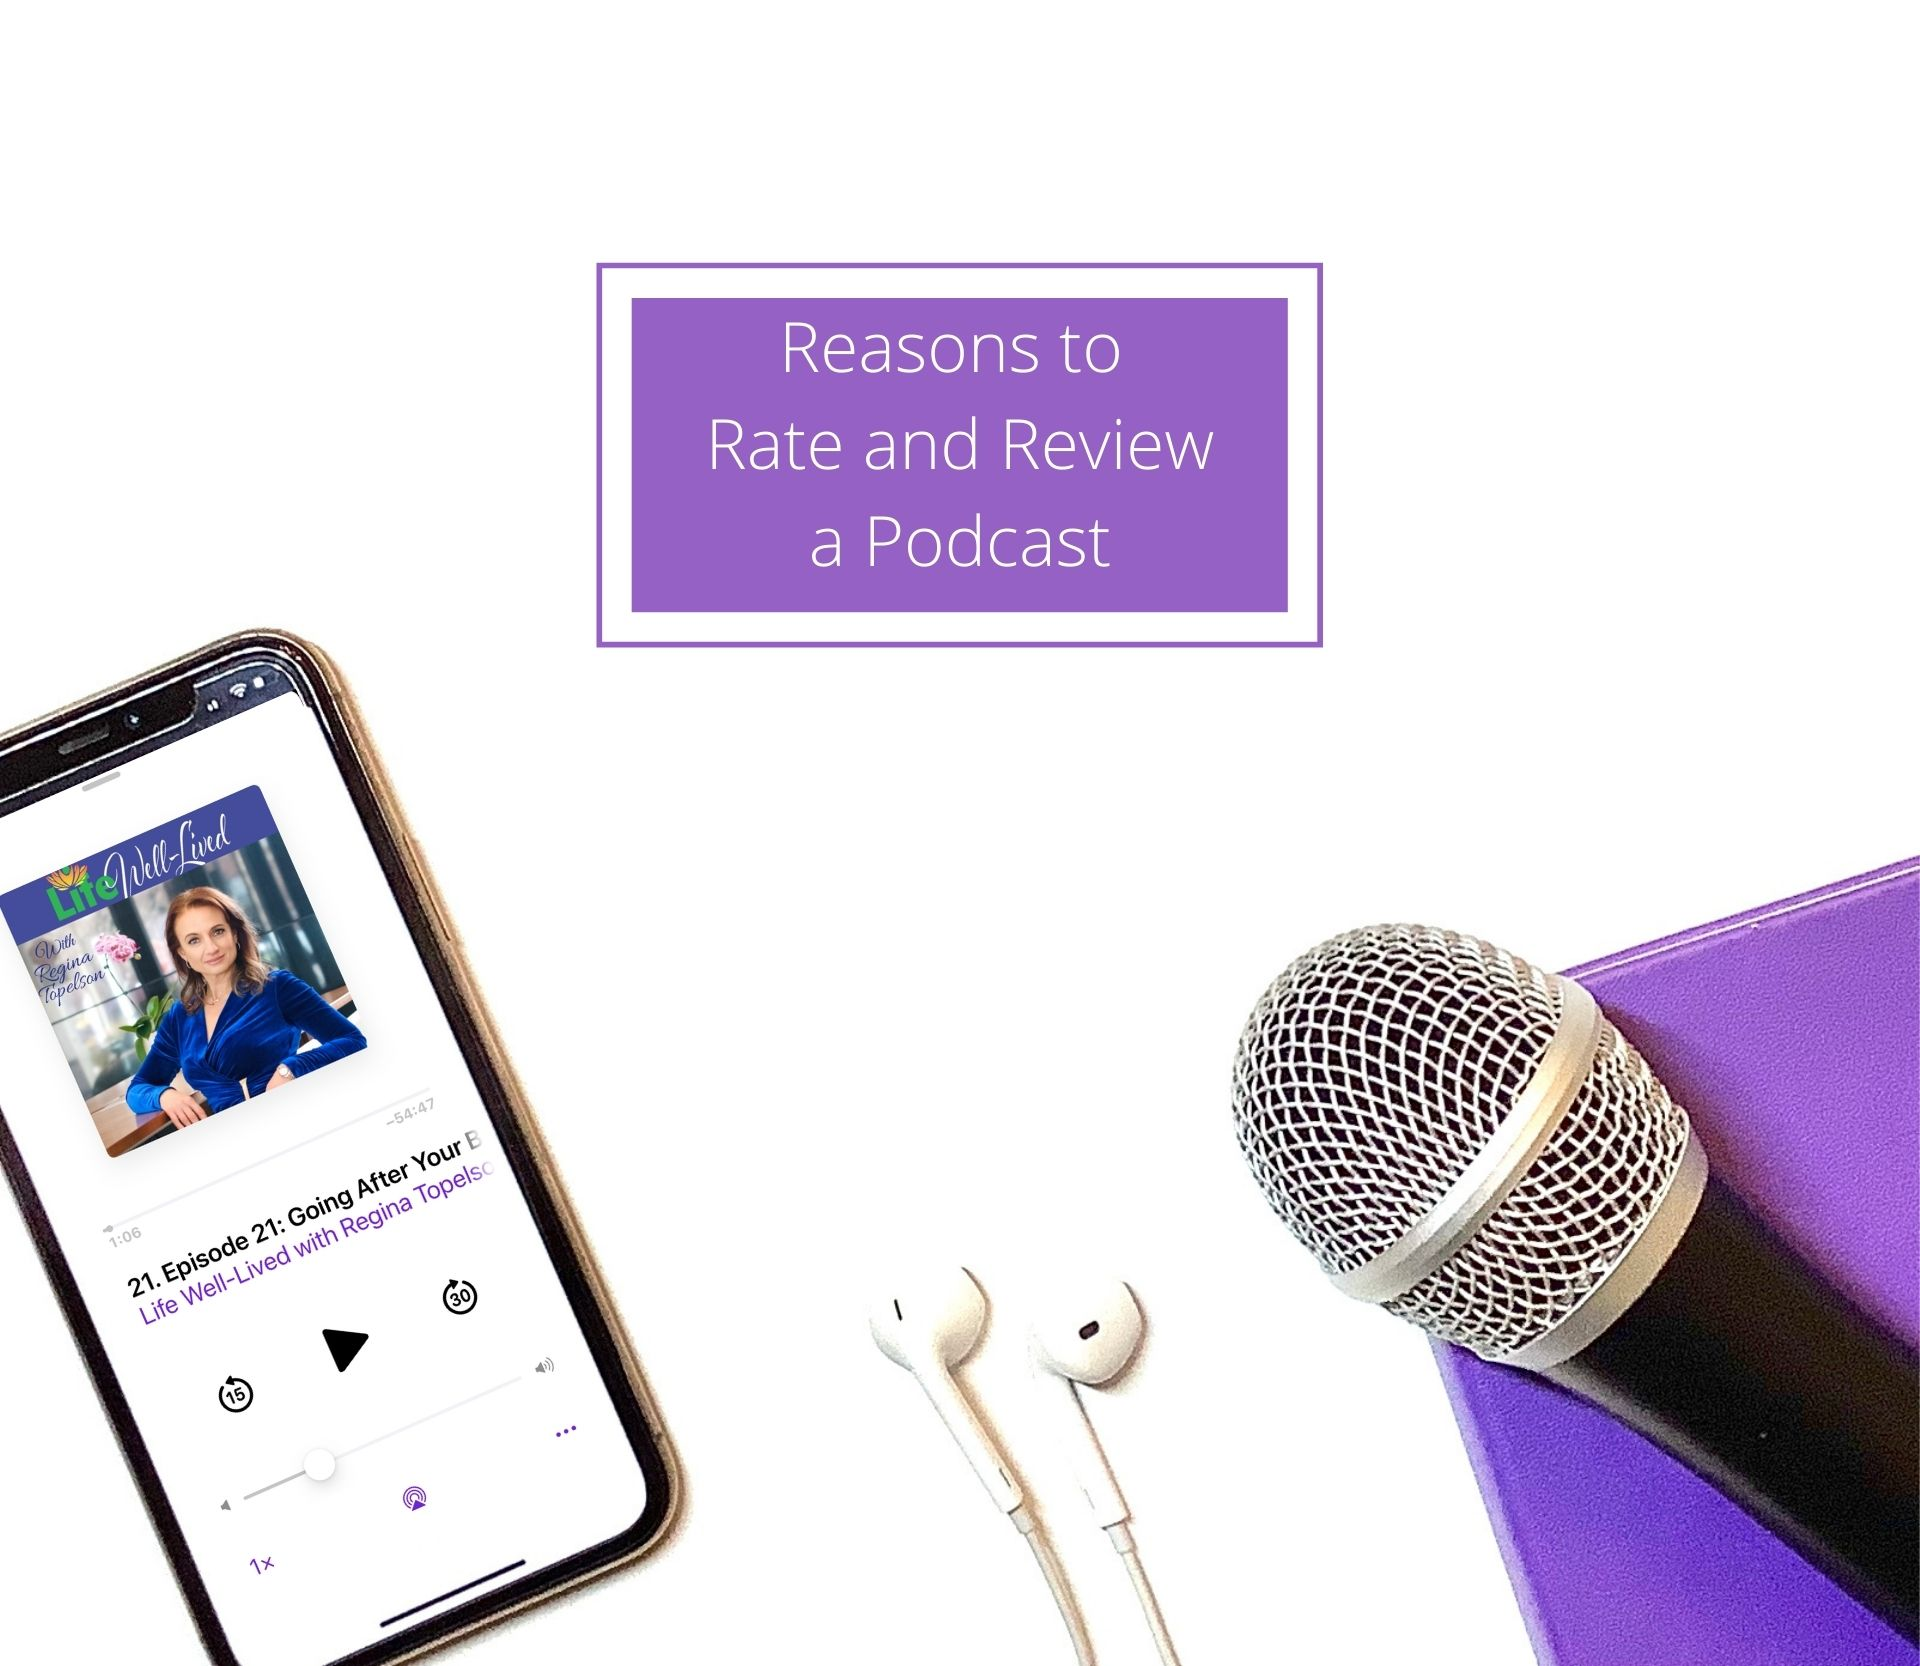 Reasons to Rate and Review a Podcast